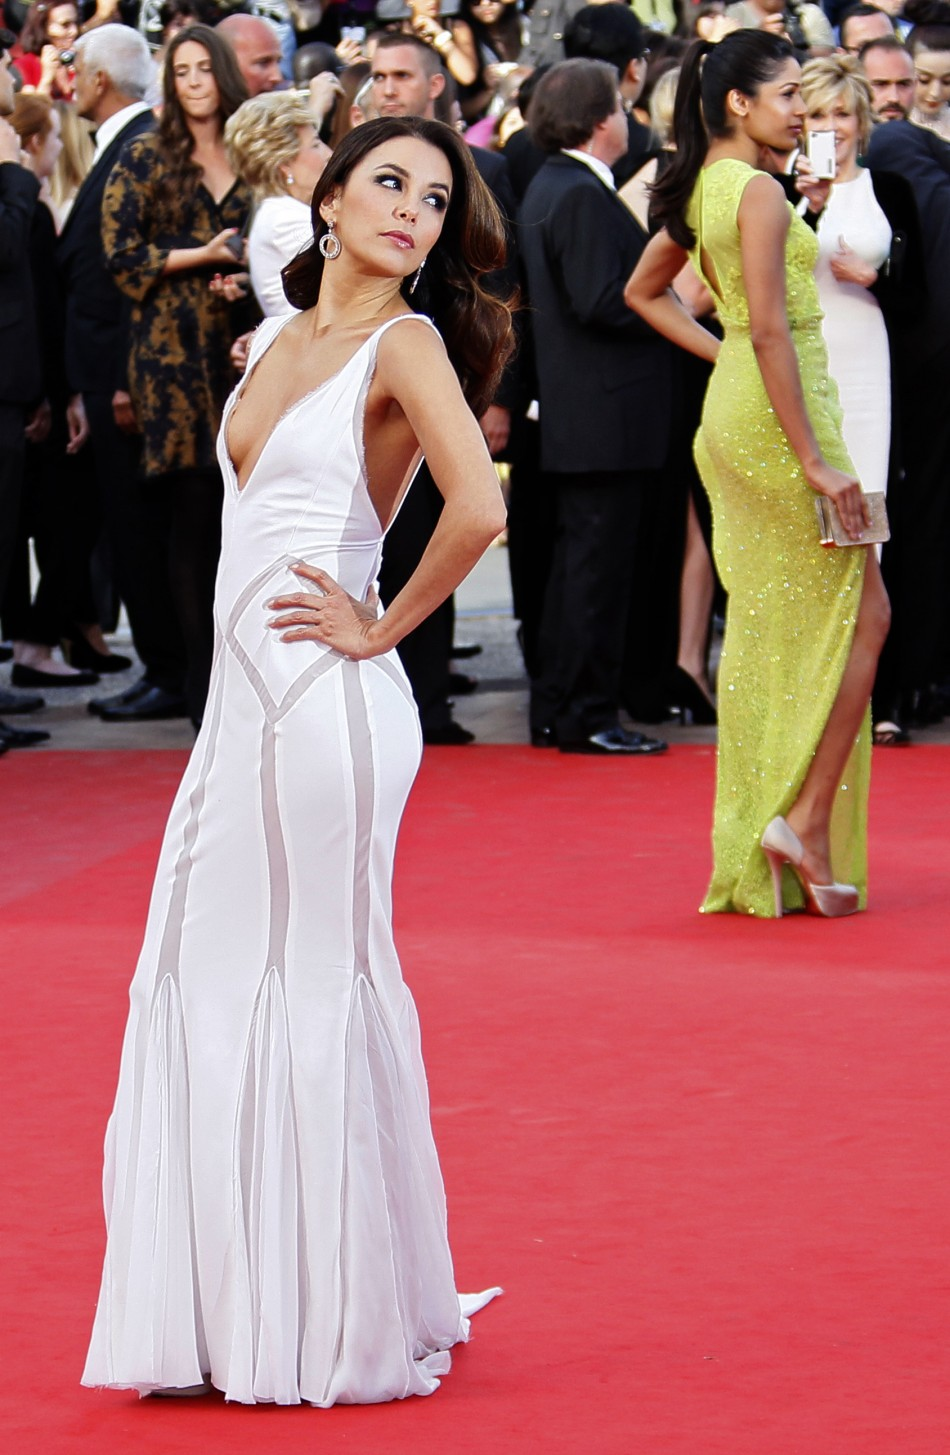 Actress Longoria arrives on the red carpet for the screeing of the film De rouille et dos at the 65th Cannes Film Festival